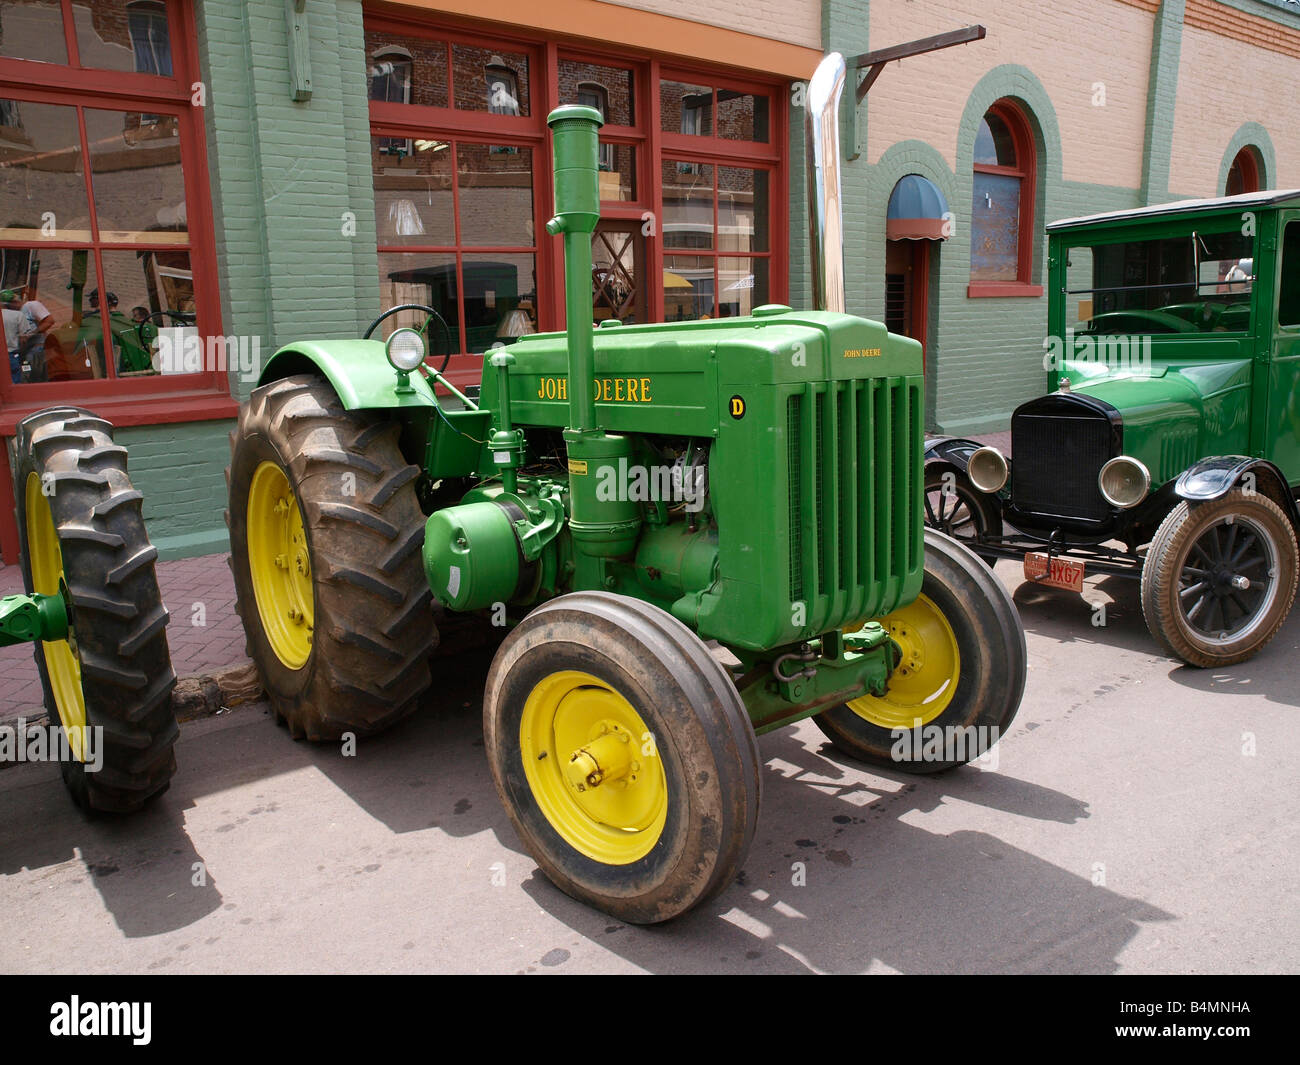 John Deere Model D Tractor together with other classic tractors decked out for the 4th July Parade Williams AZ US - Stock Image